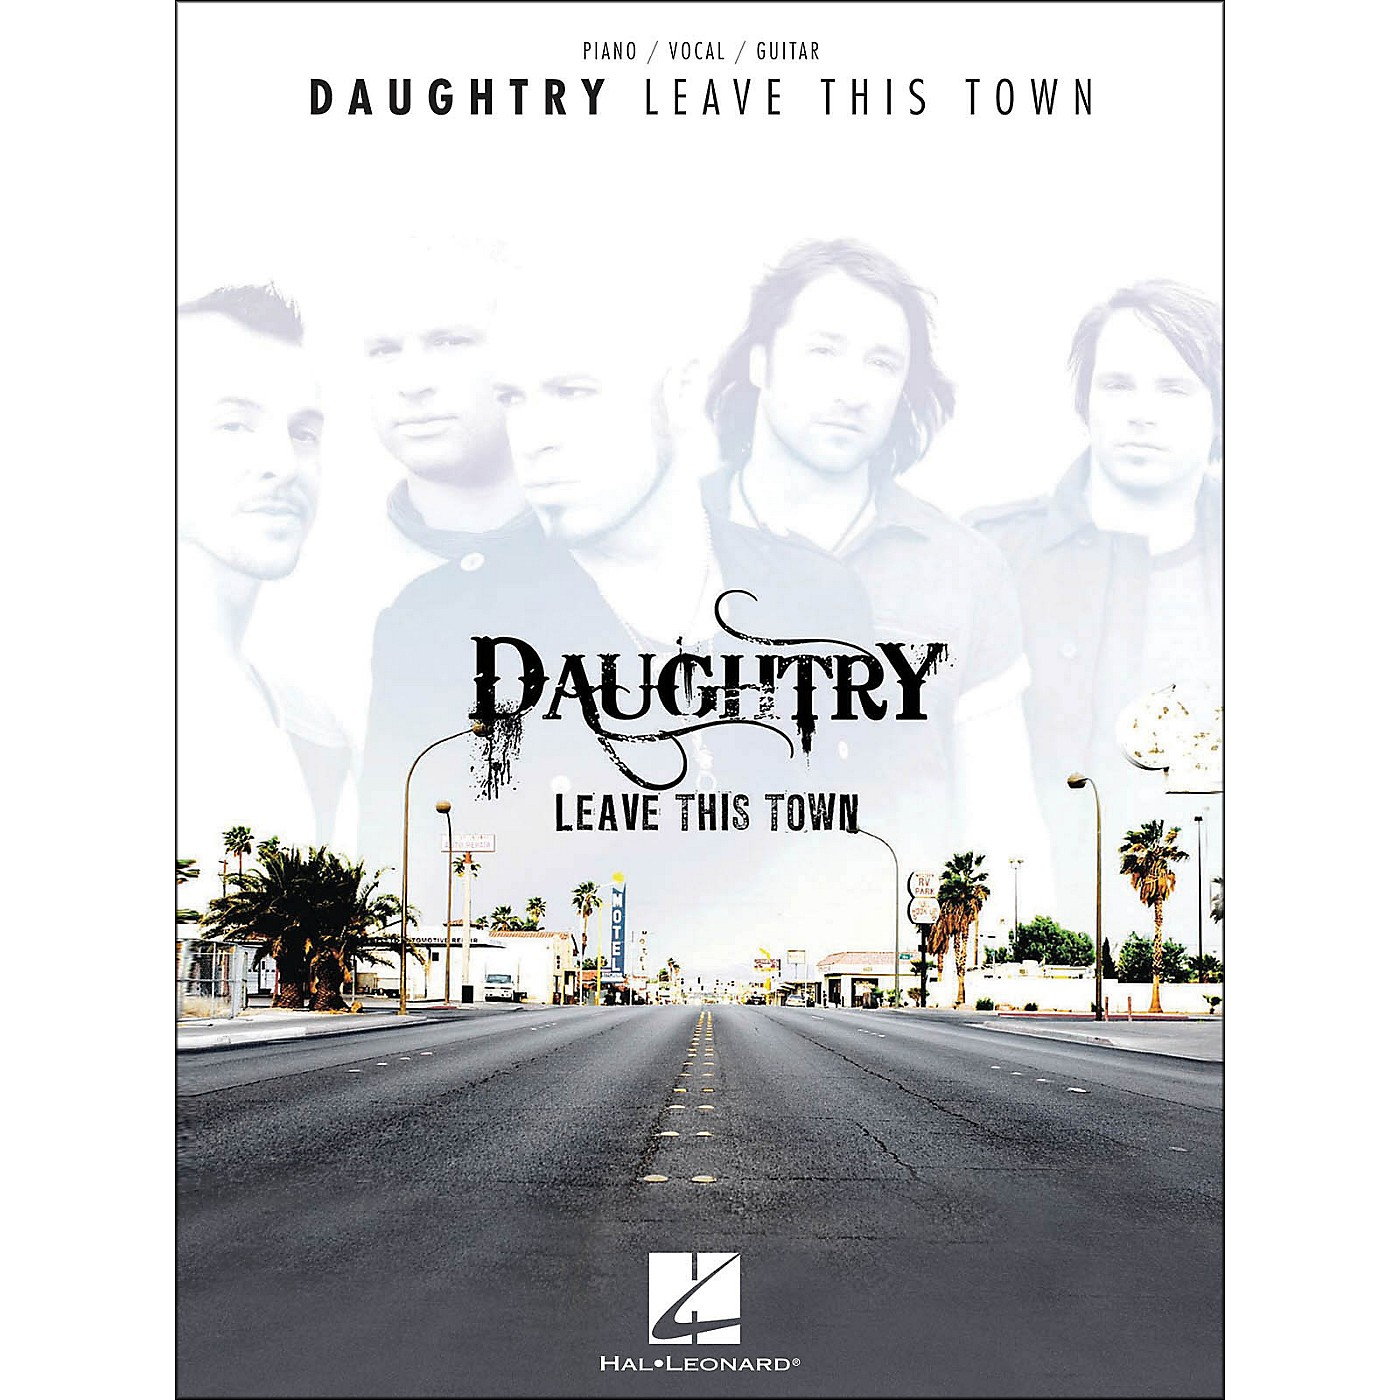 Hal Leonard Daughtry - Leave This Town arranged for piano, vocal, and guitar (P/V/G) thumbnail